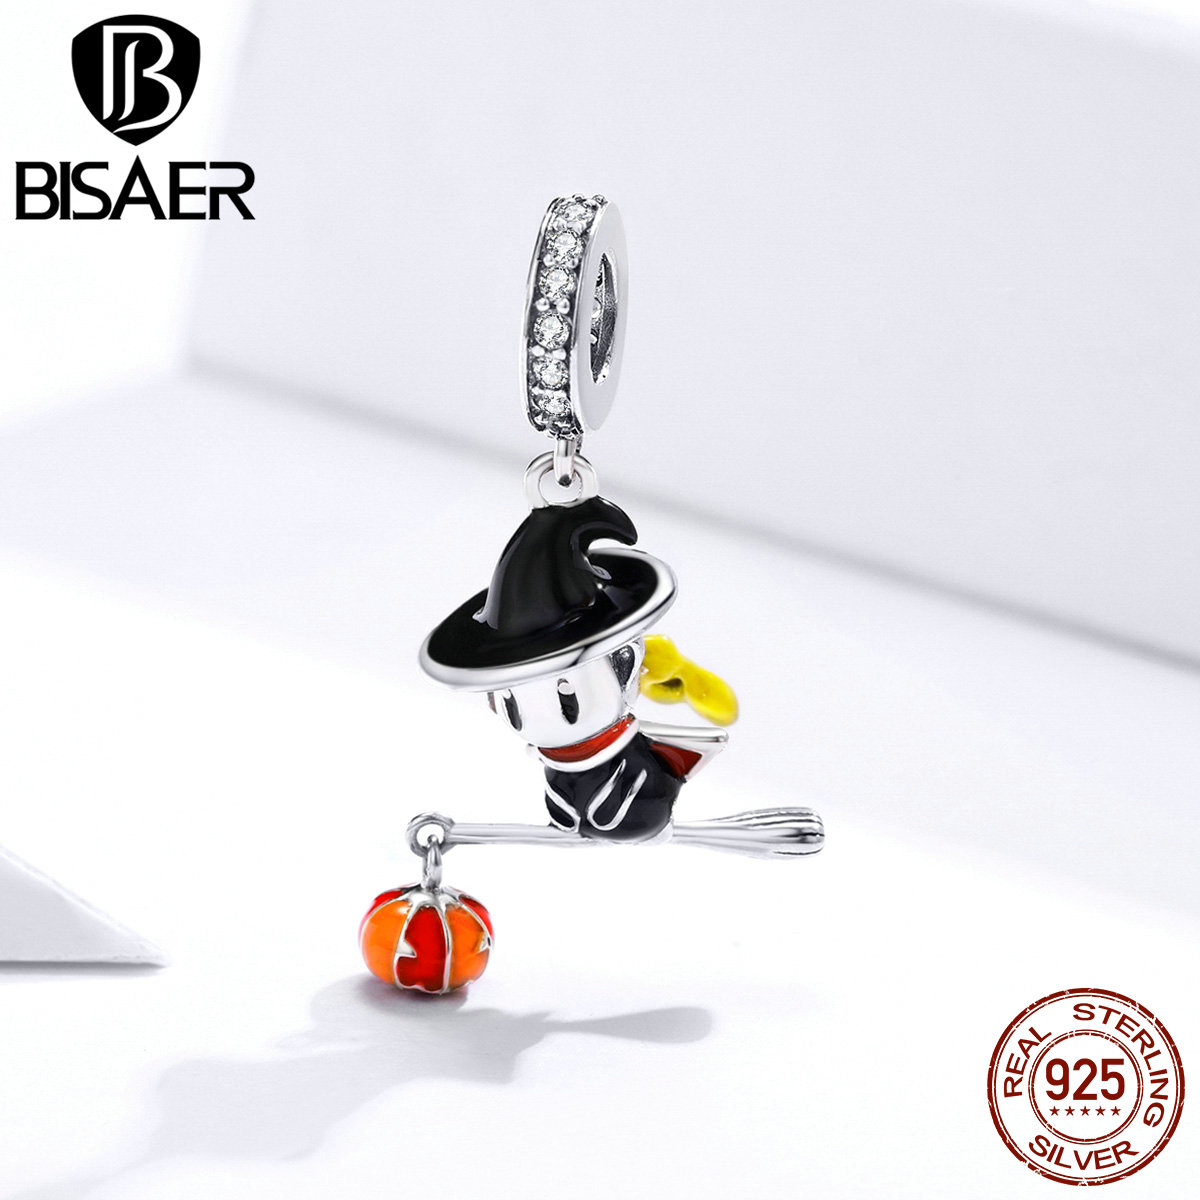 BISAER Magic Witch & Pumpkin Light Charm 925 Sterling Silver Black Enemal Pendant Bead For DIY Bracelet Necklaces Jewelry EFC240